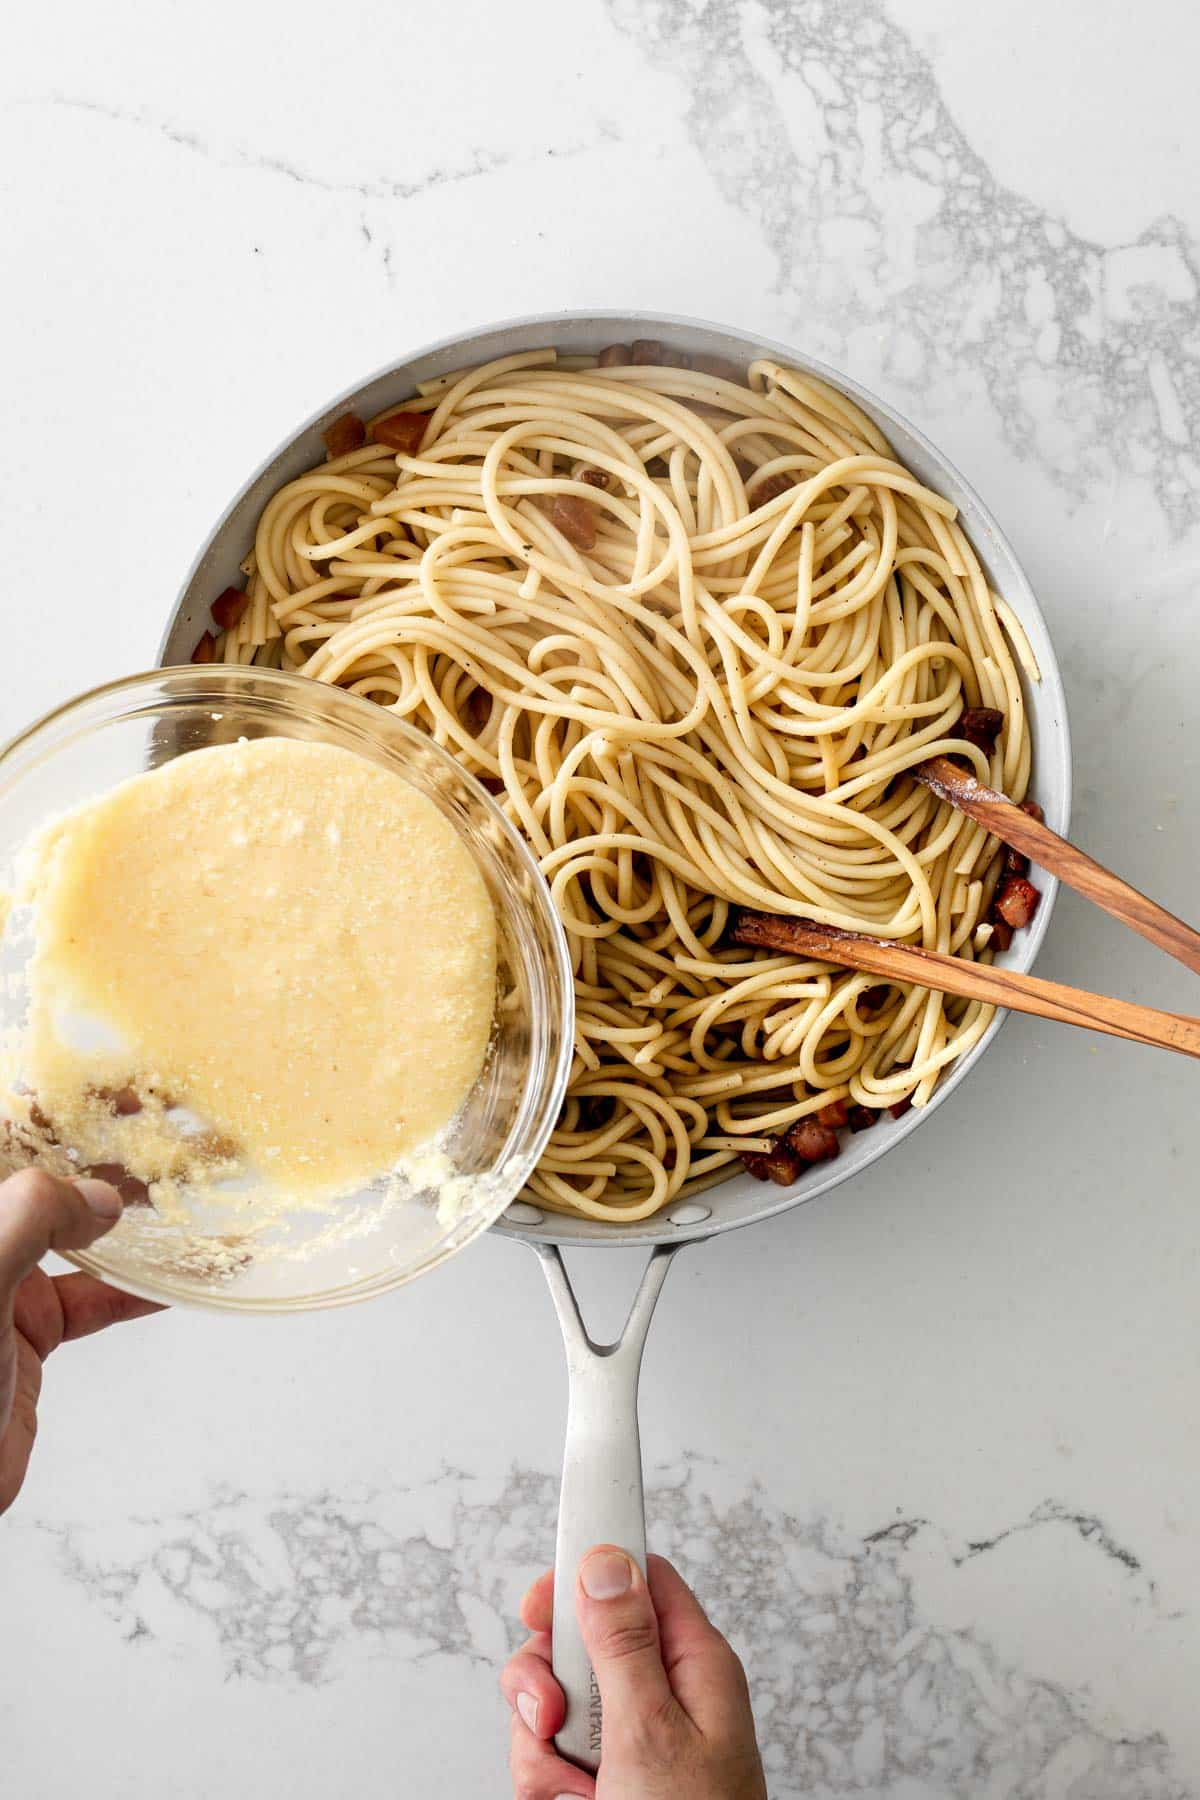 Hand holding a glass bowl with egg mixture above a pan of spaghetti and cubed guanciale